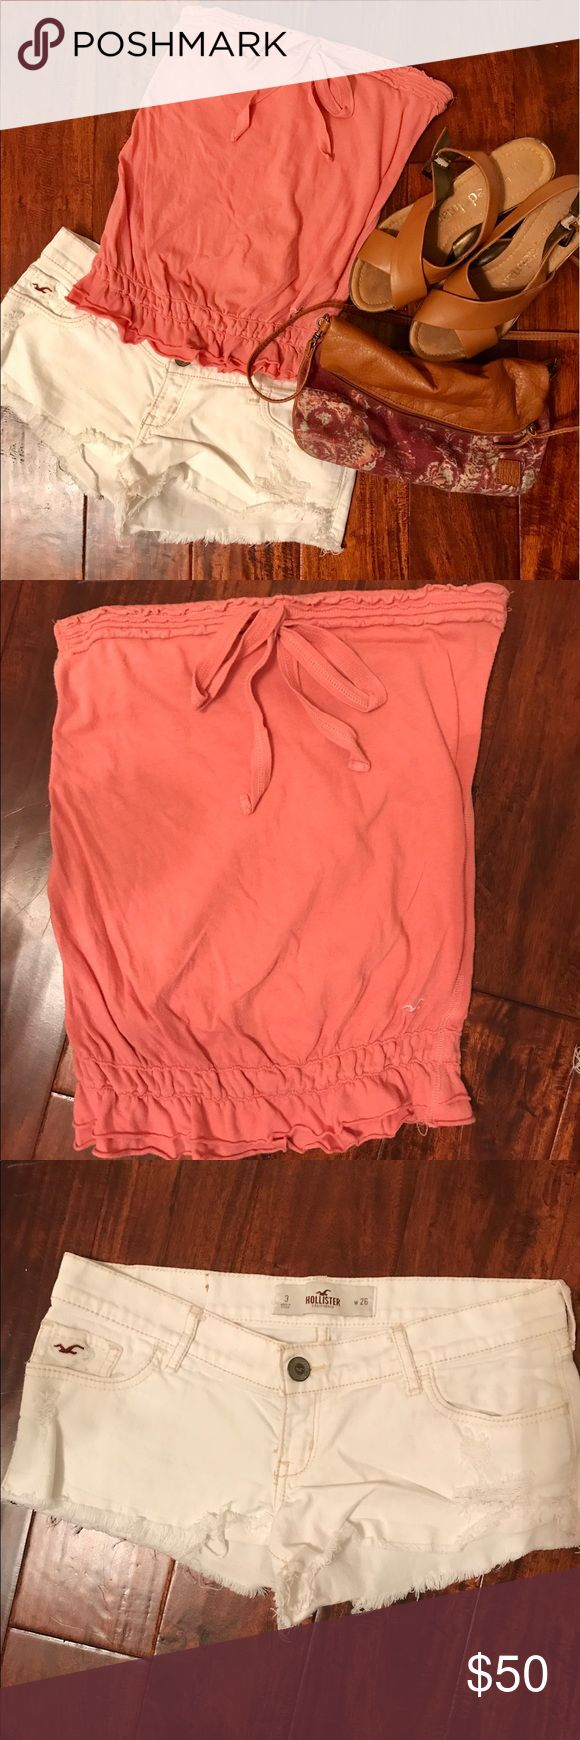 Hollister strapless tee and cut offs bundle Pink Strapless Hollister tee and white Hollister Cut off shorts. Shirt size small shorts size 26. Both in great condition. Purse and wedges not included Shorts